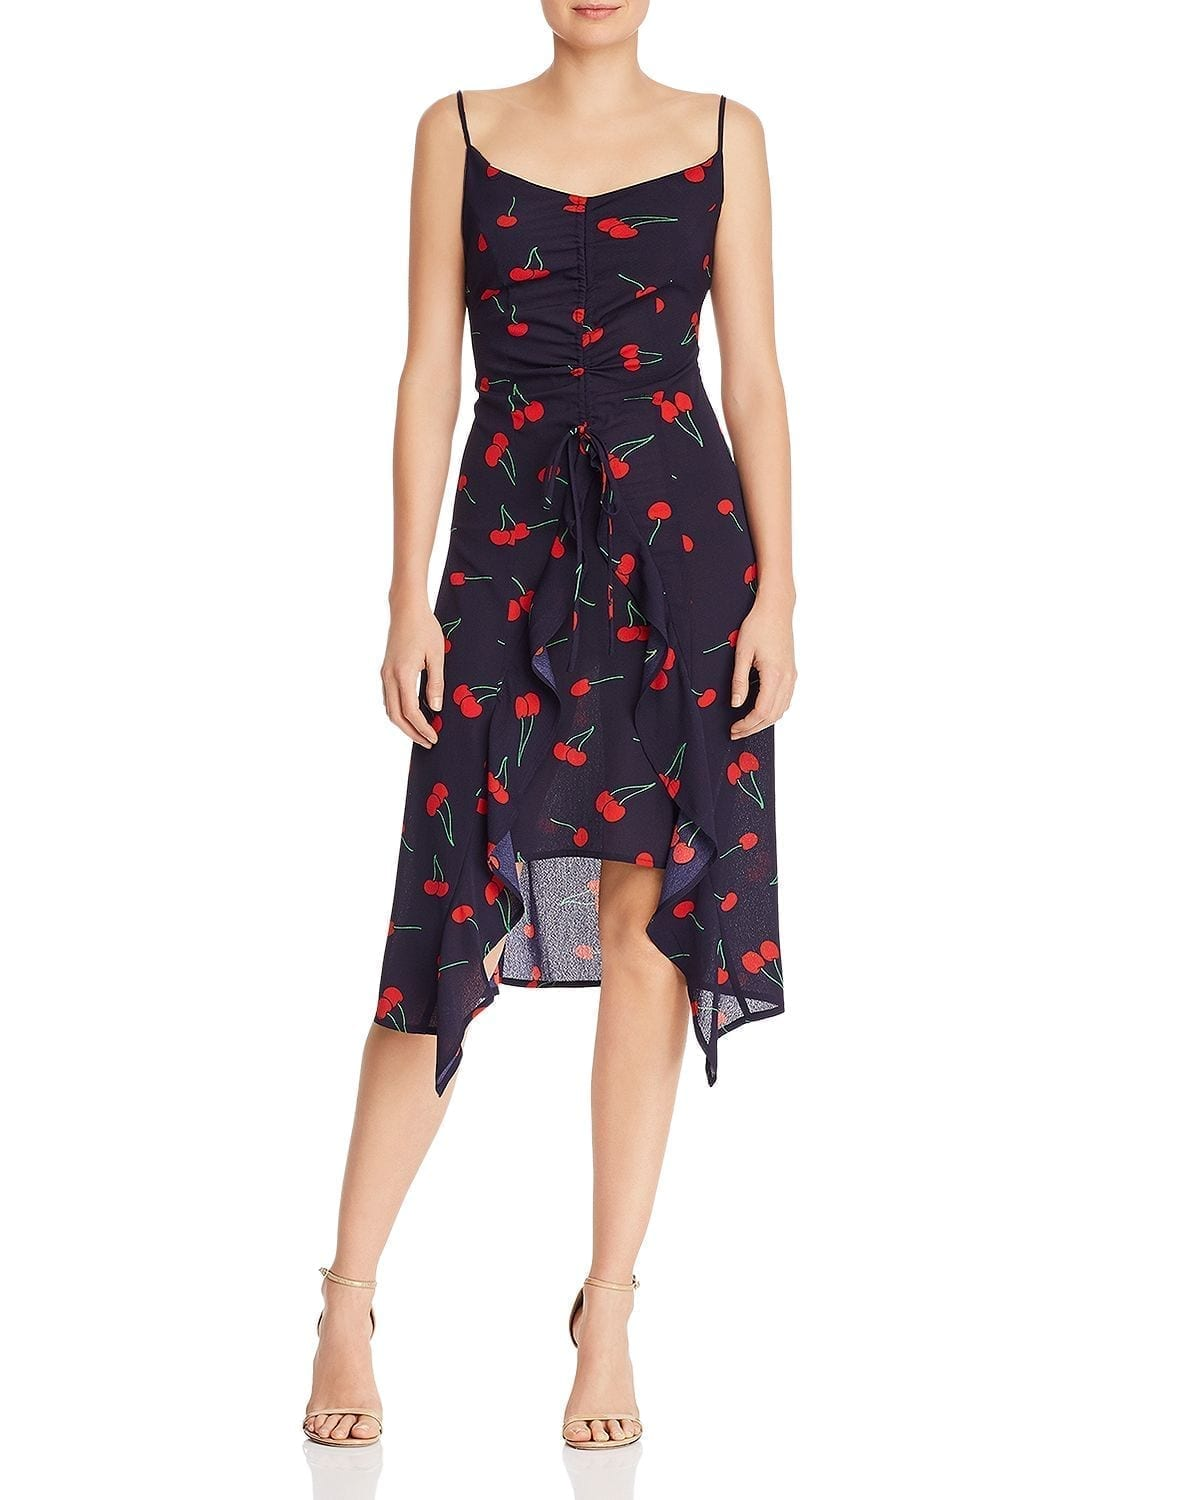 AQUA High/Low Cherry Print Midi Navy Dress